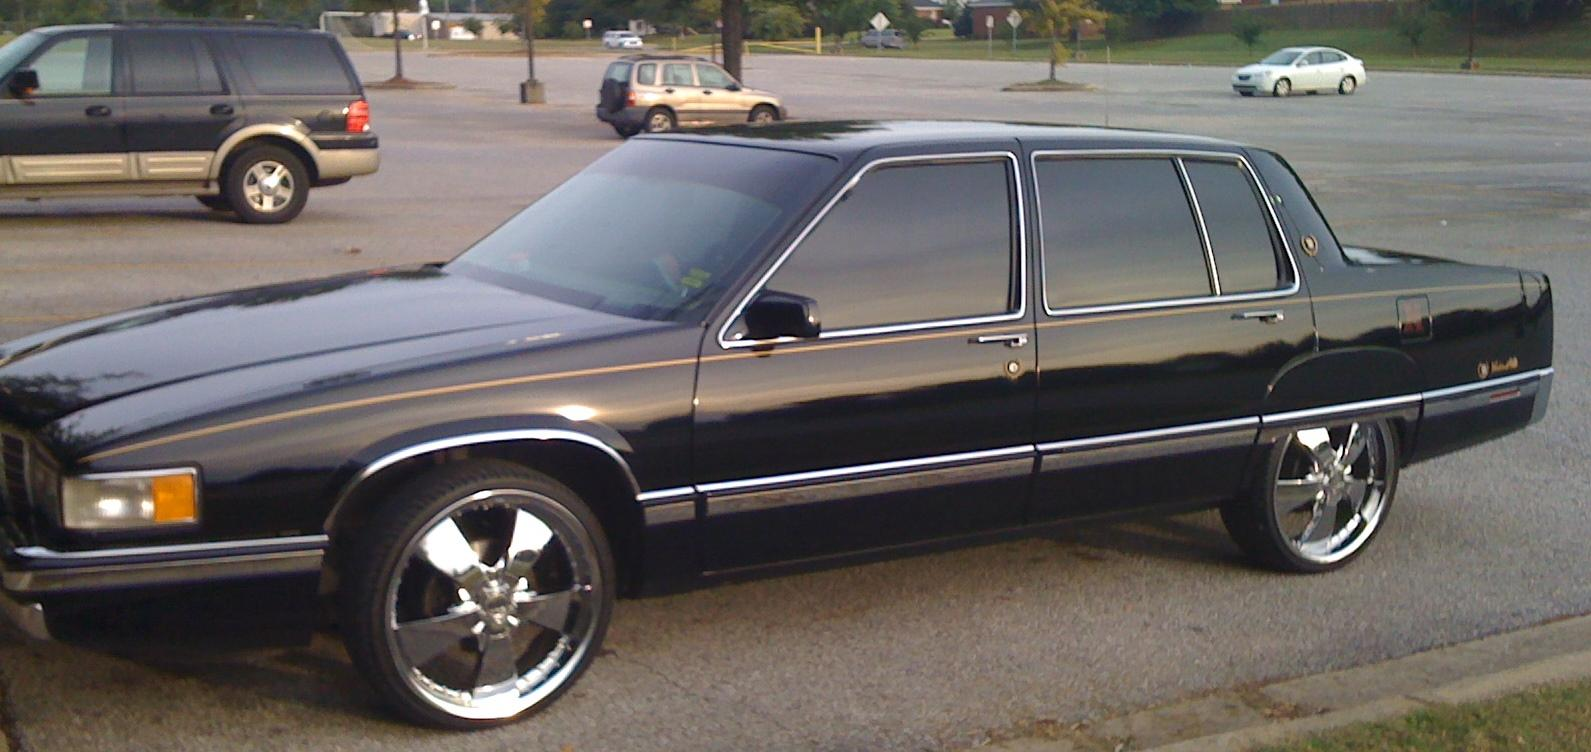 tink2011 39 s 1992 cadillac deville in tuscaloosa al. Cars Review. Best American Auto & Cars Review